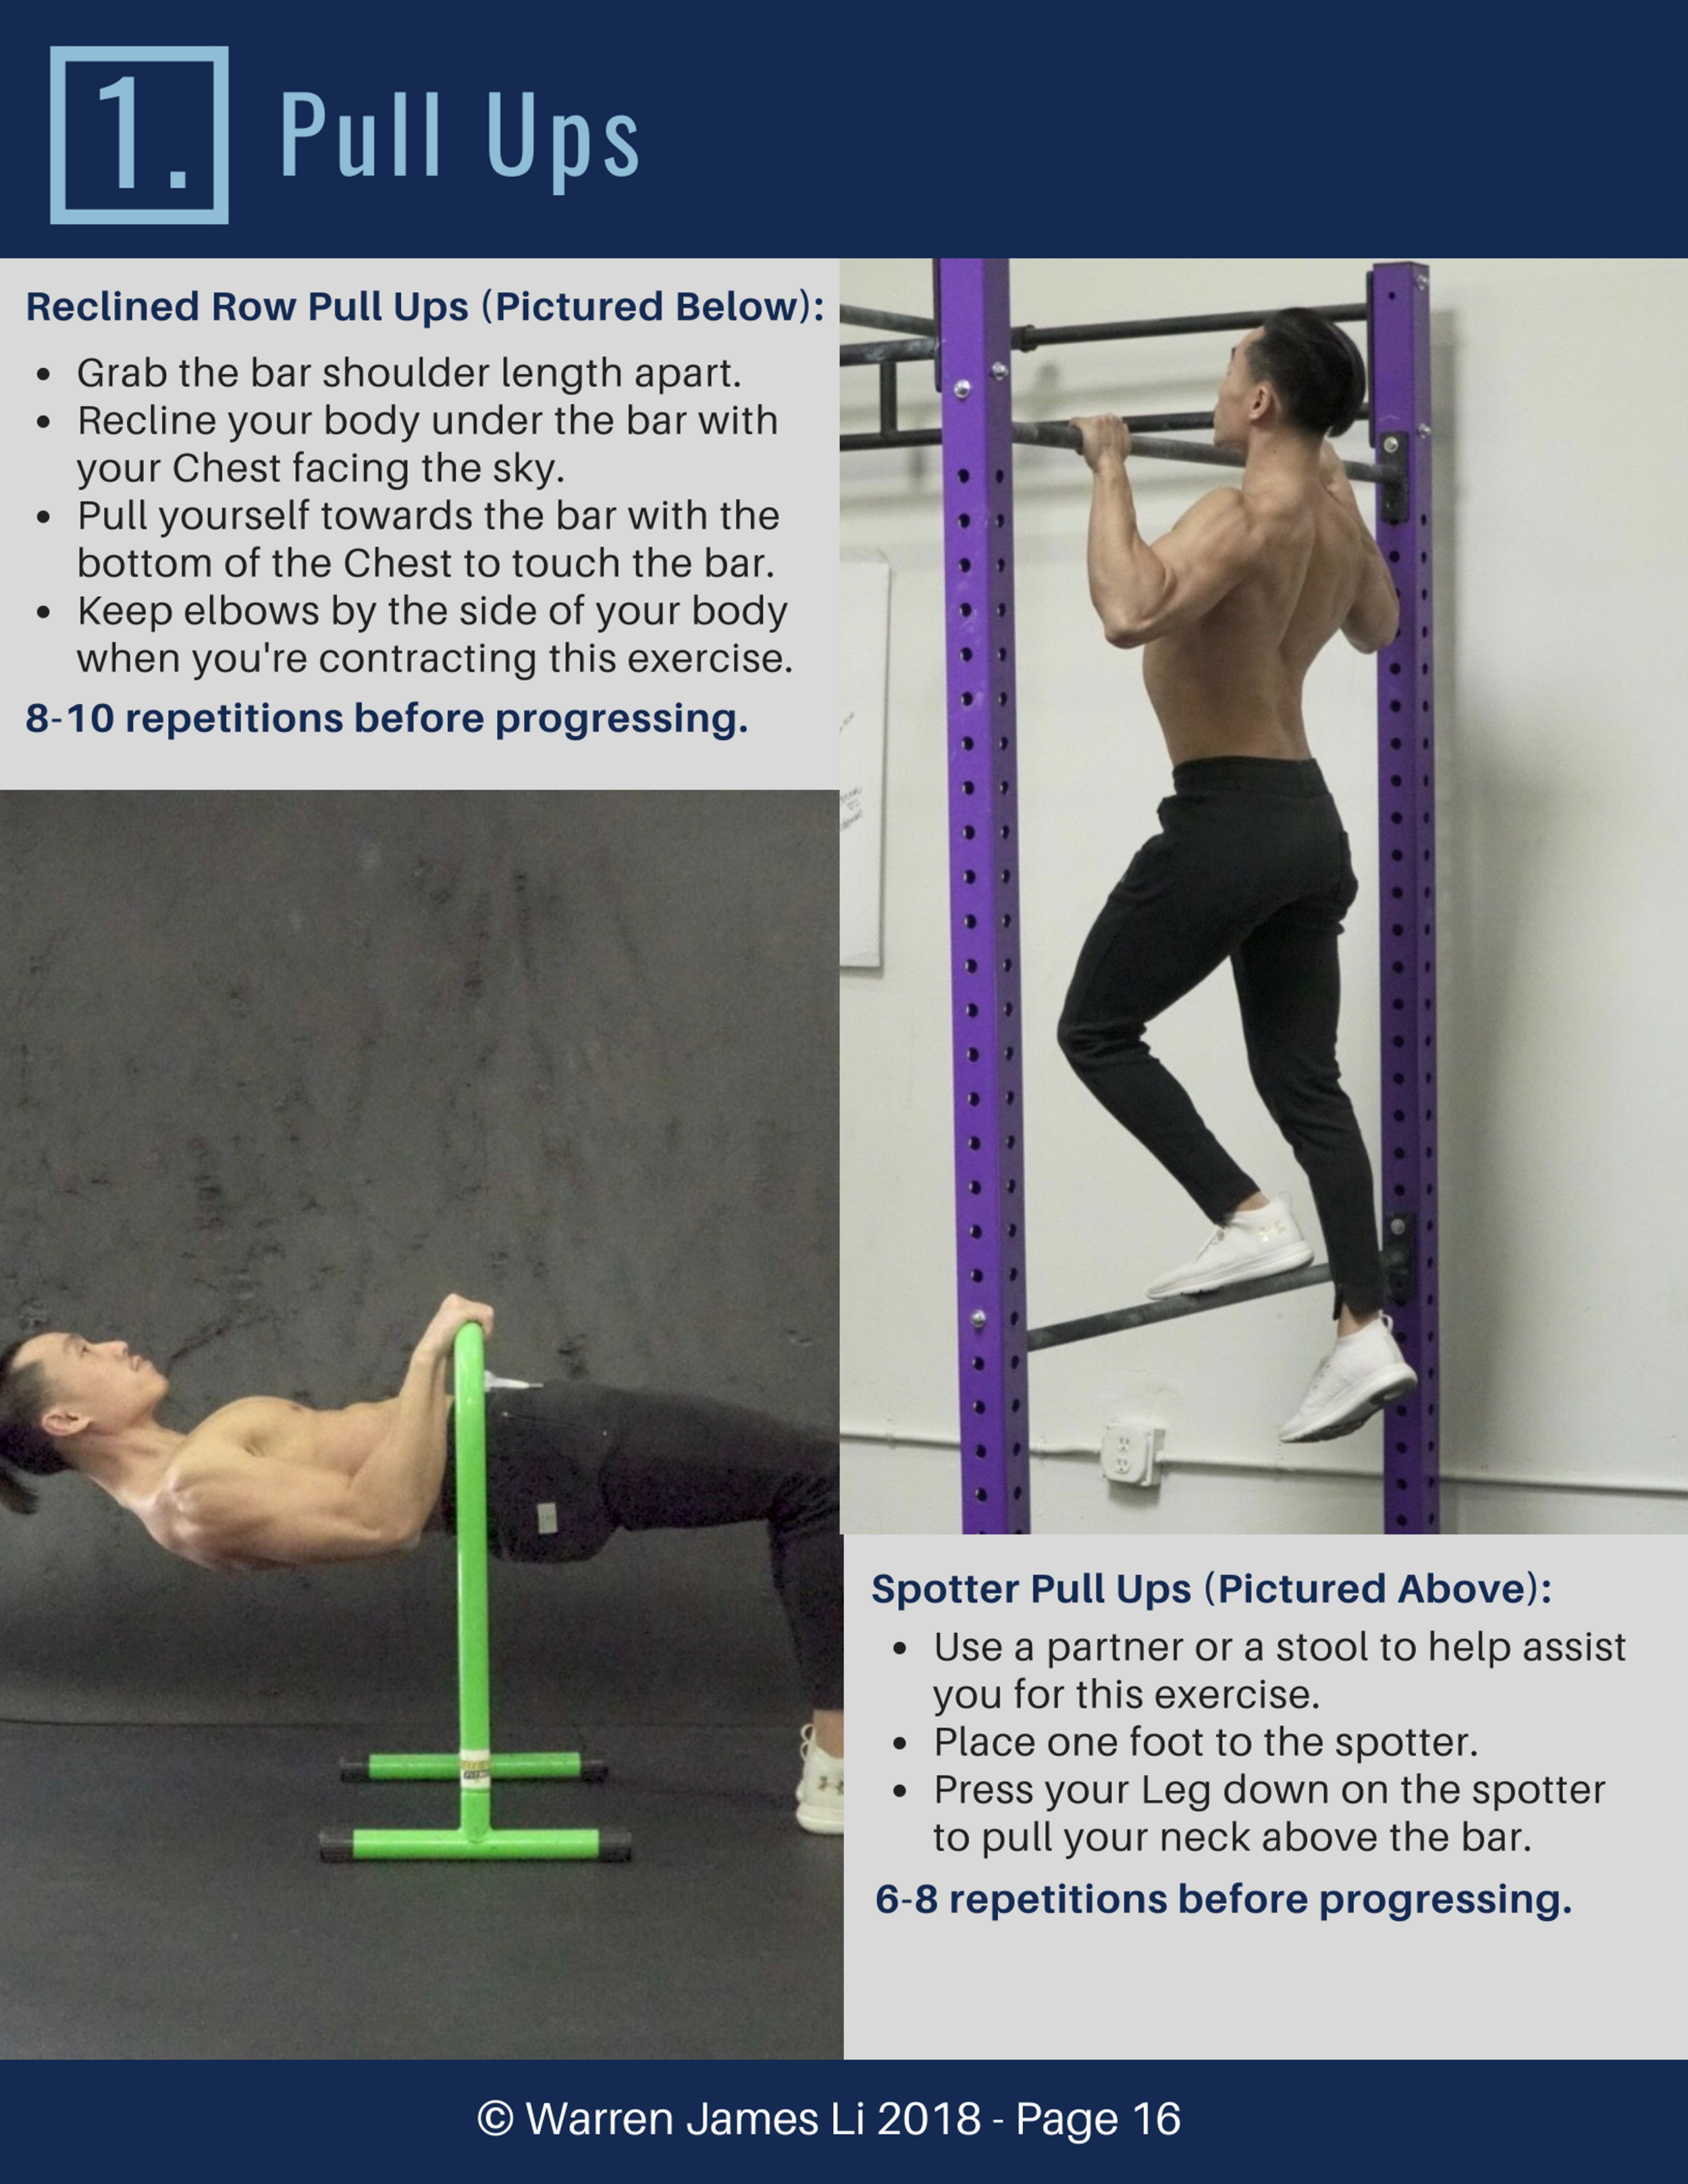 3. Pull Ups- 9 ExercisesTo Get Strong With Calisthenics.png